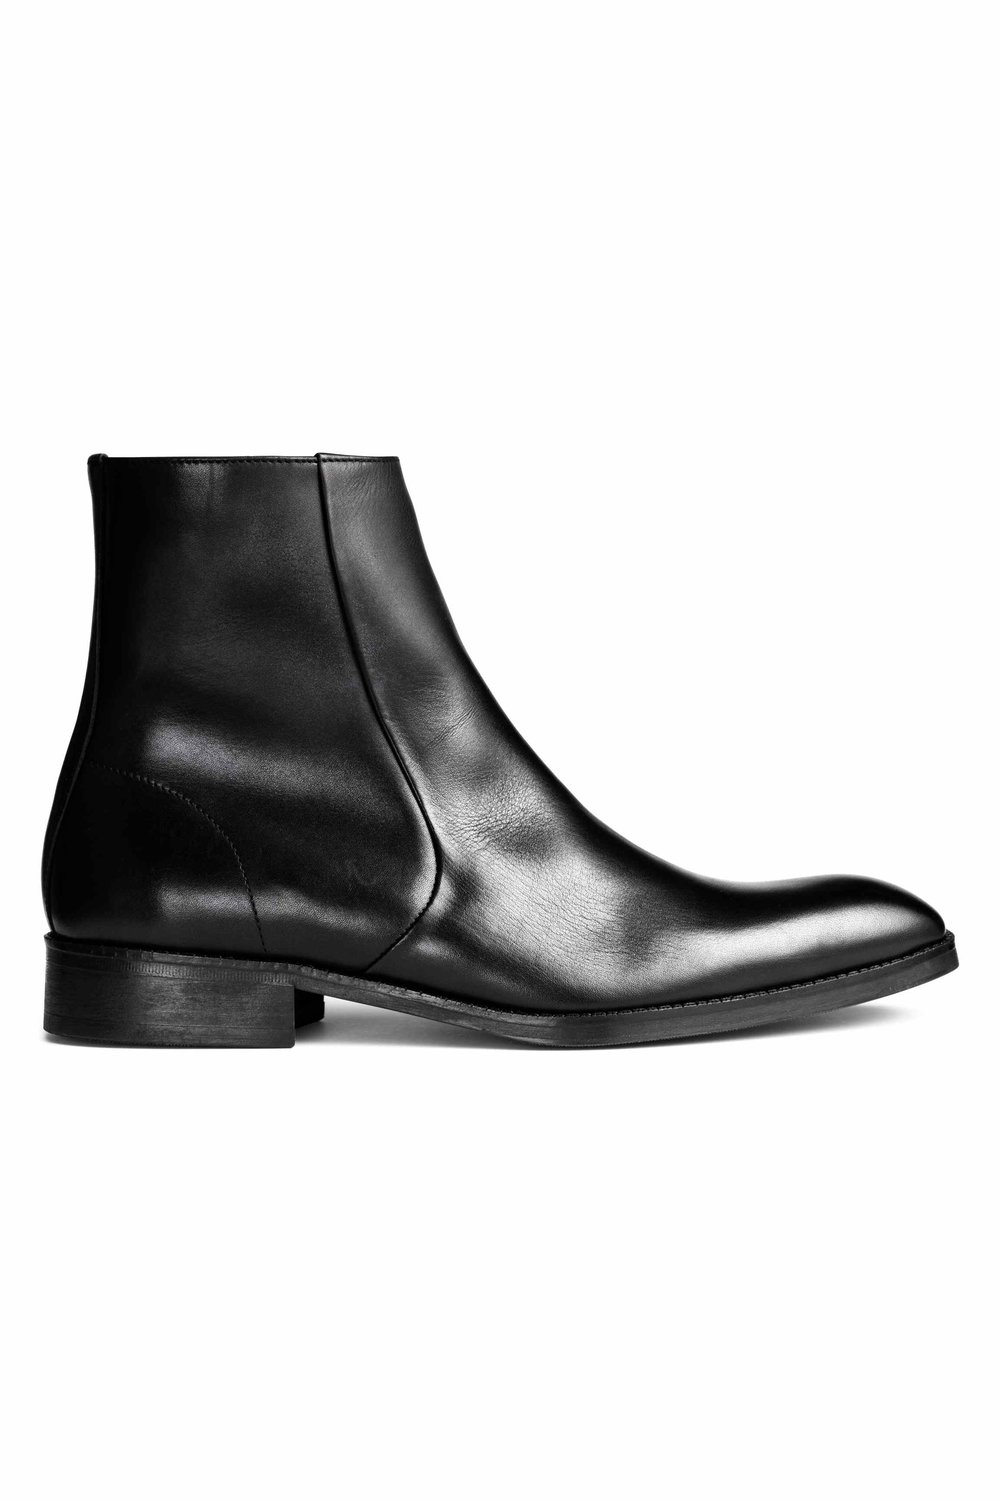 Leather ankle boots, £79.99 (hm.com)